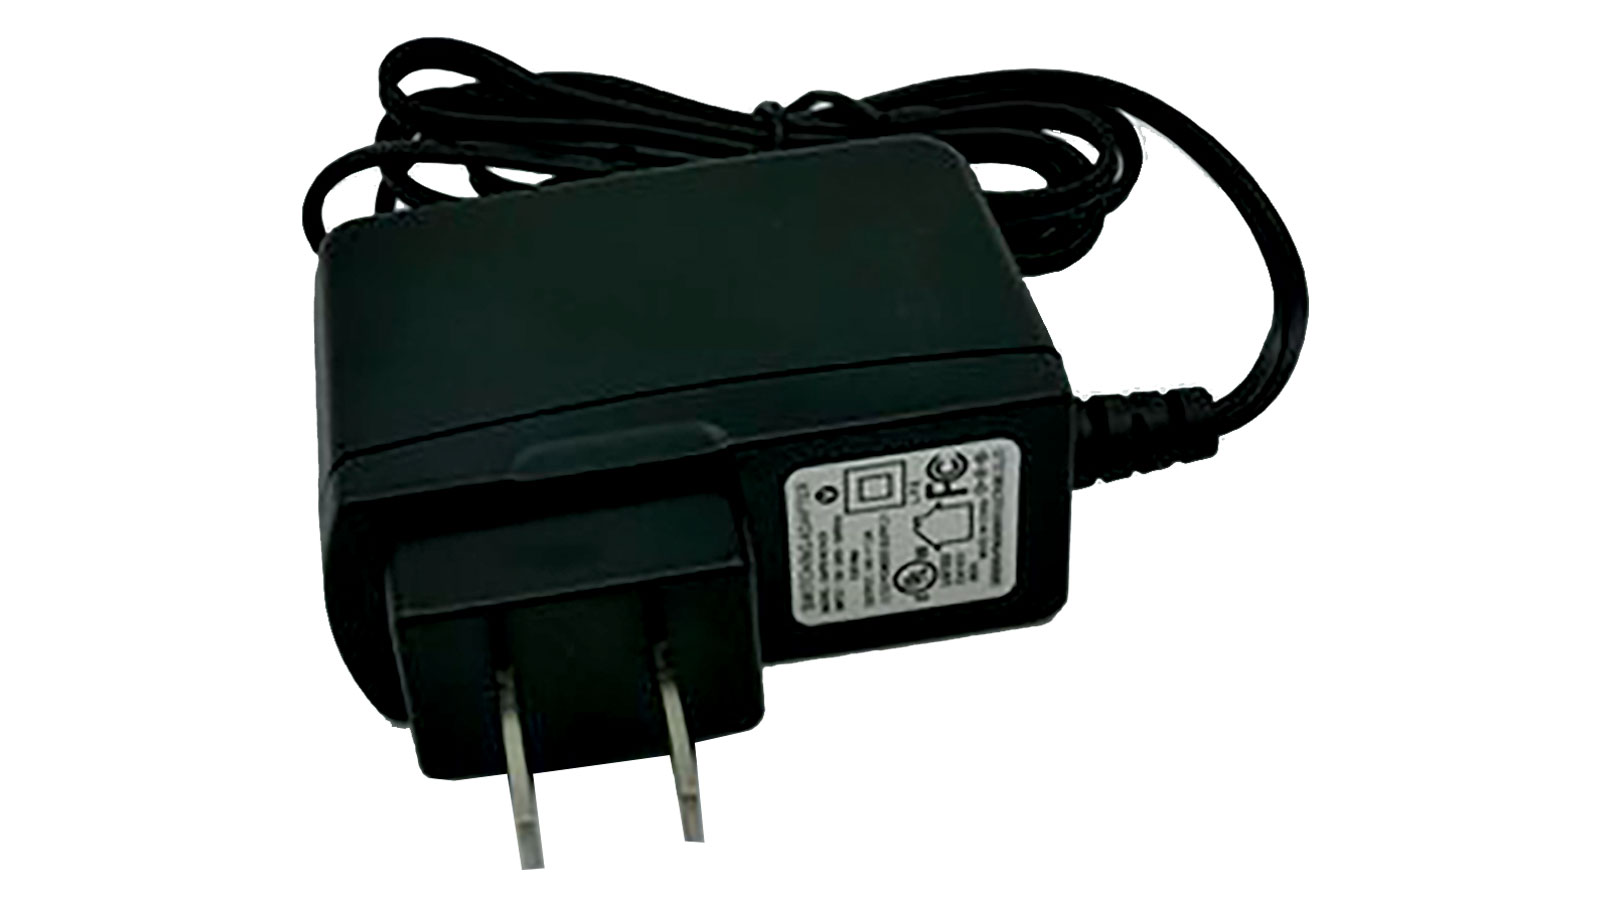 Nautic Sport HOME CHARGER - 12K UNIT